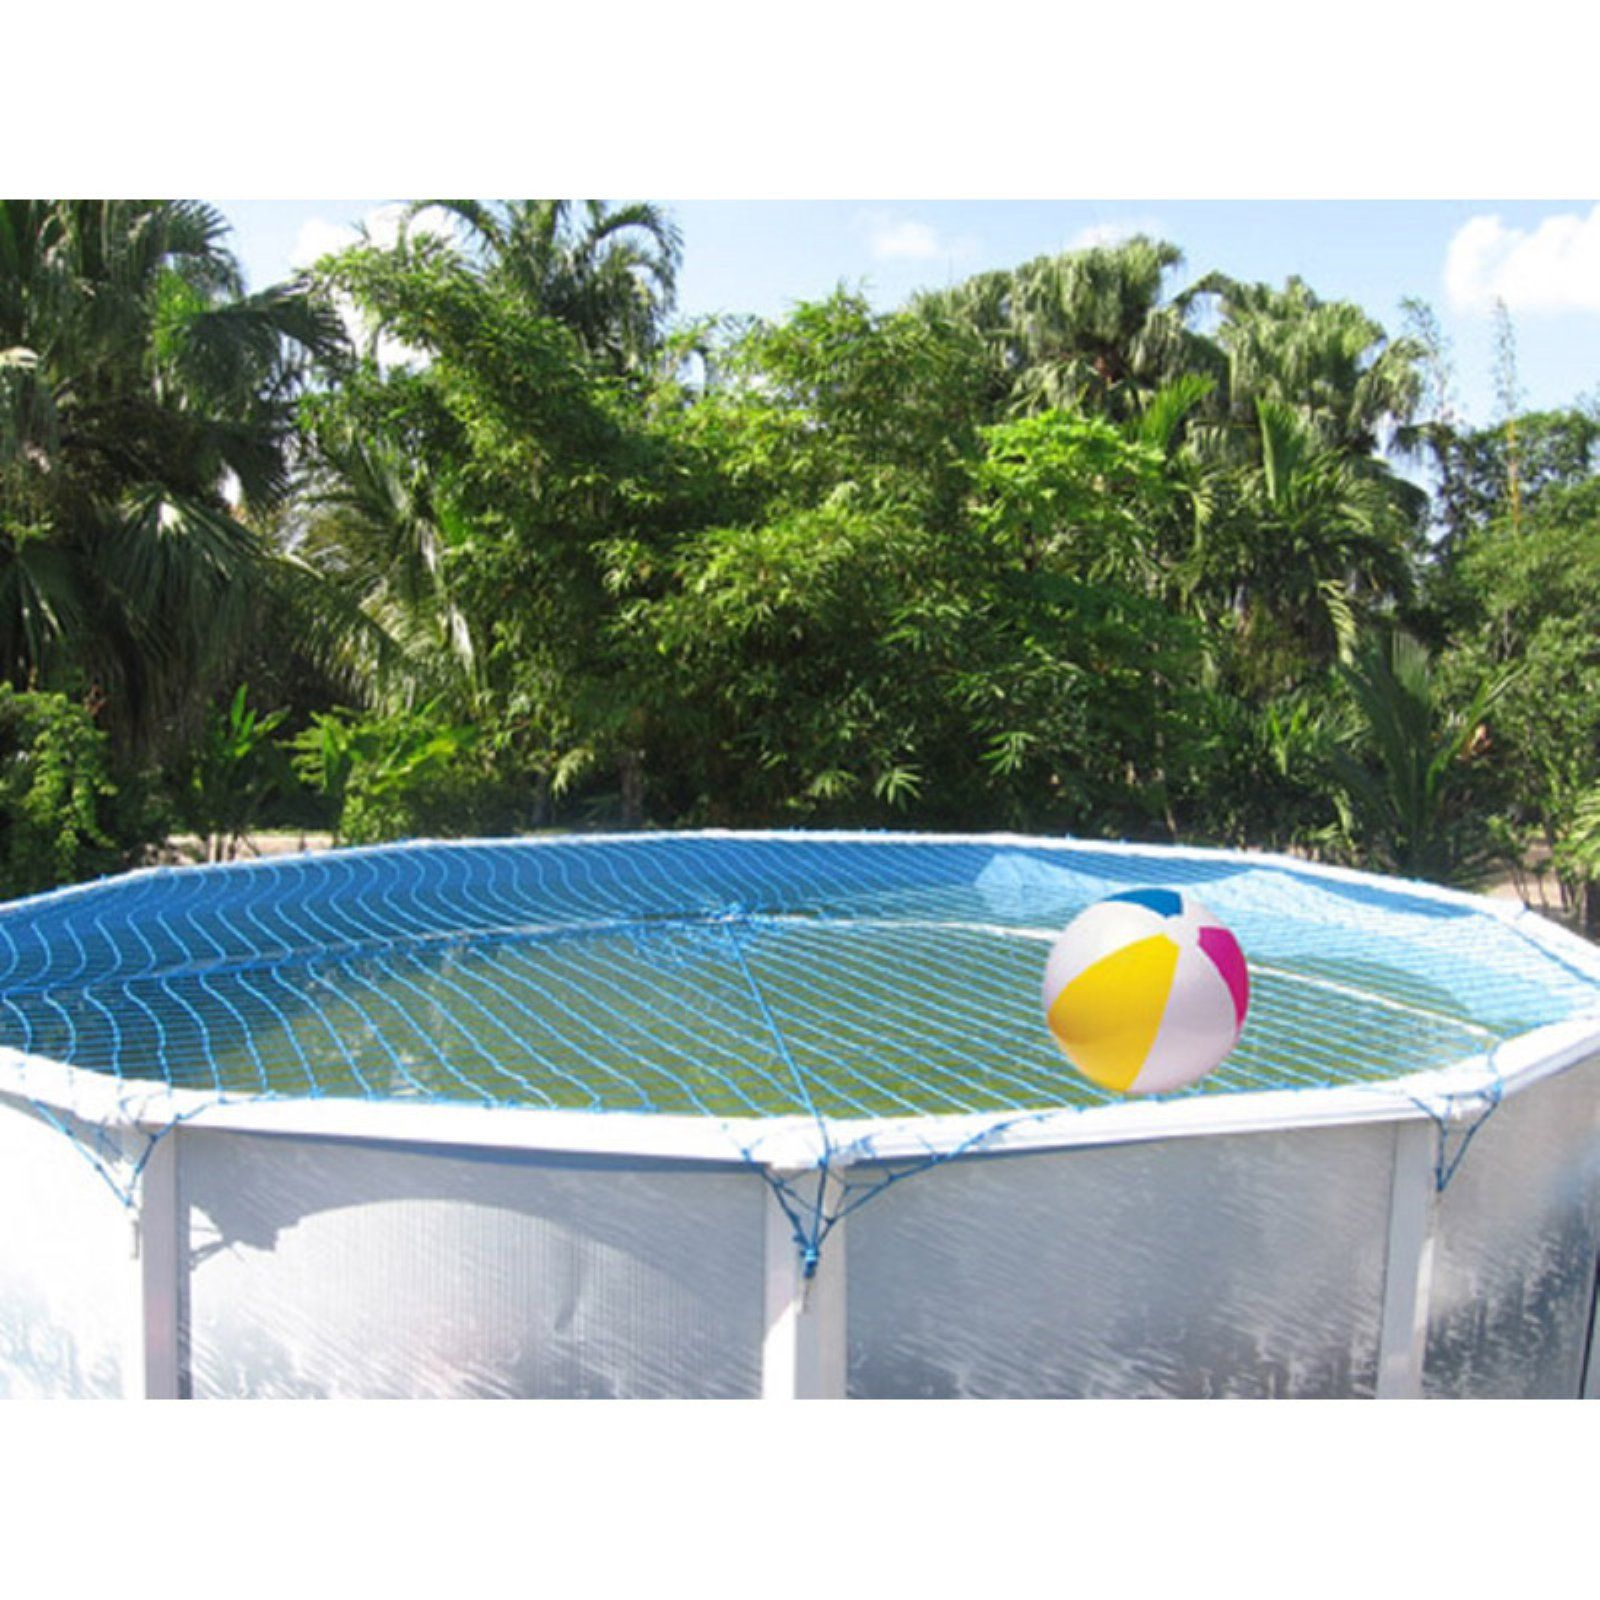 Water Warden Pool Safety Net Cover For Above Ground Pool Pool Safety Swimming Pool Safety Above Ground Swimming Pools